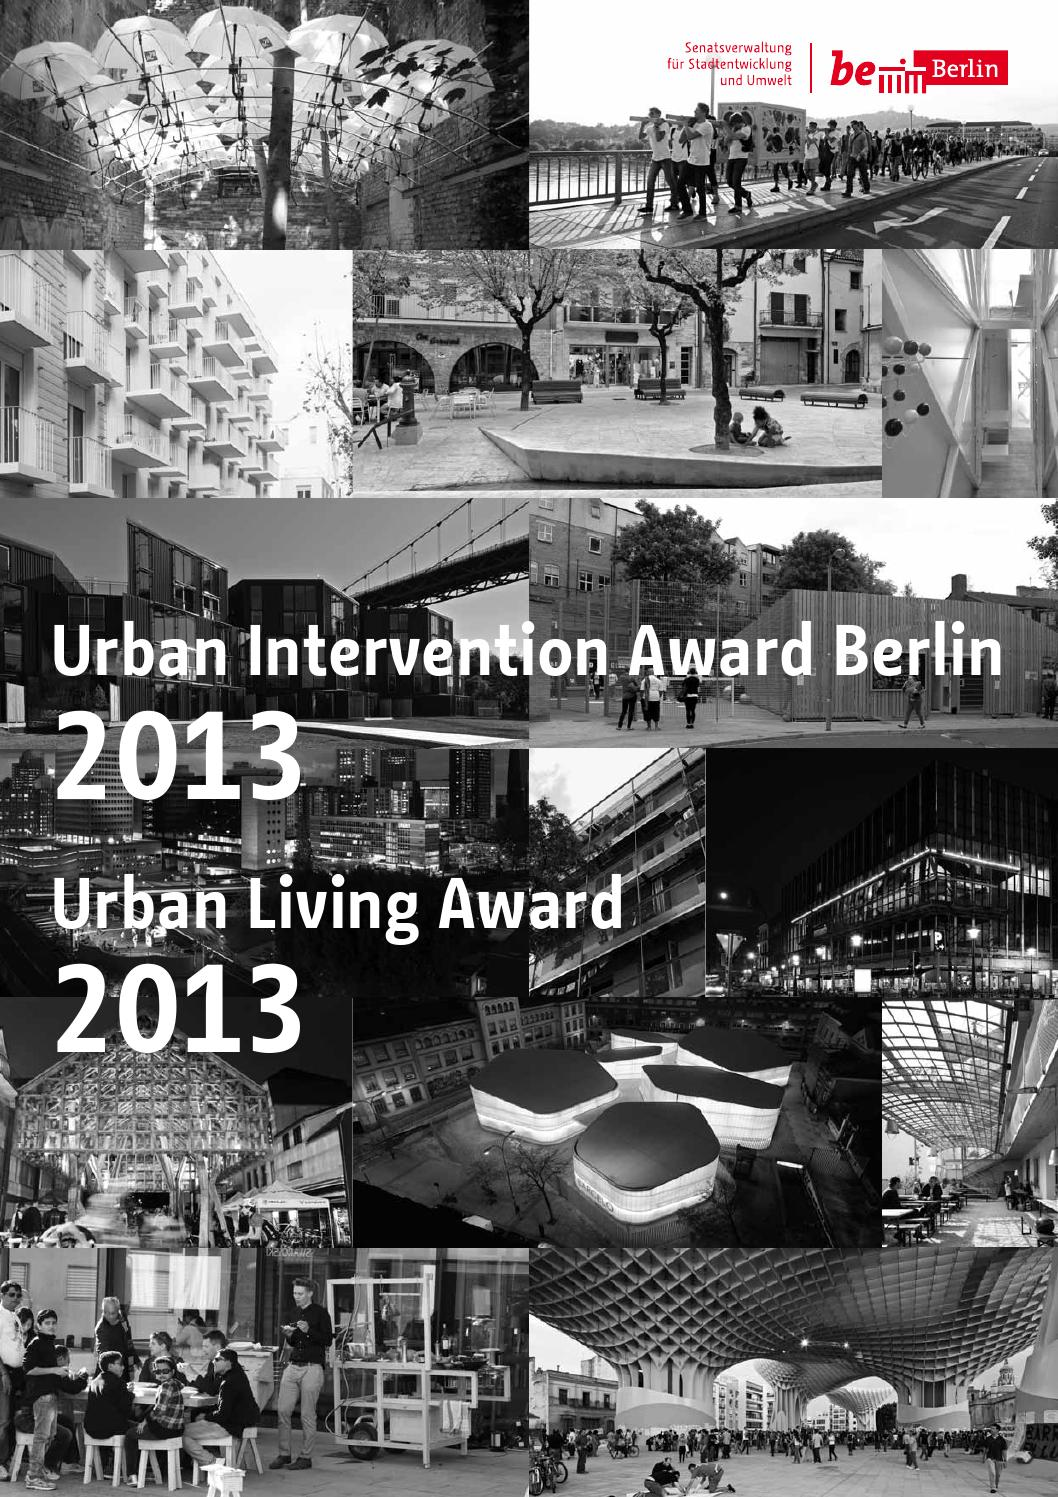 Urban Intervention Awards Berlin 2013 by 22001 - issuu